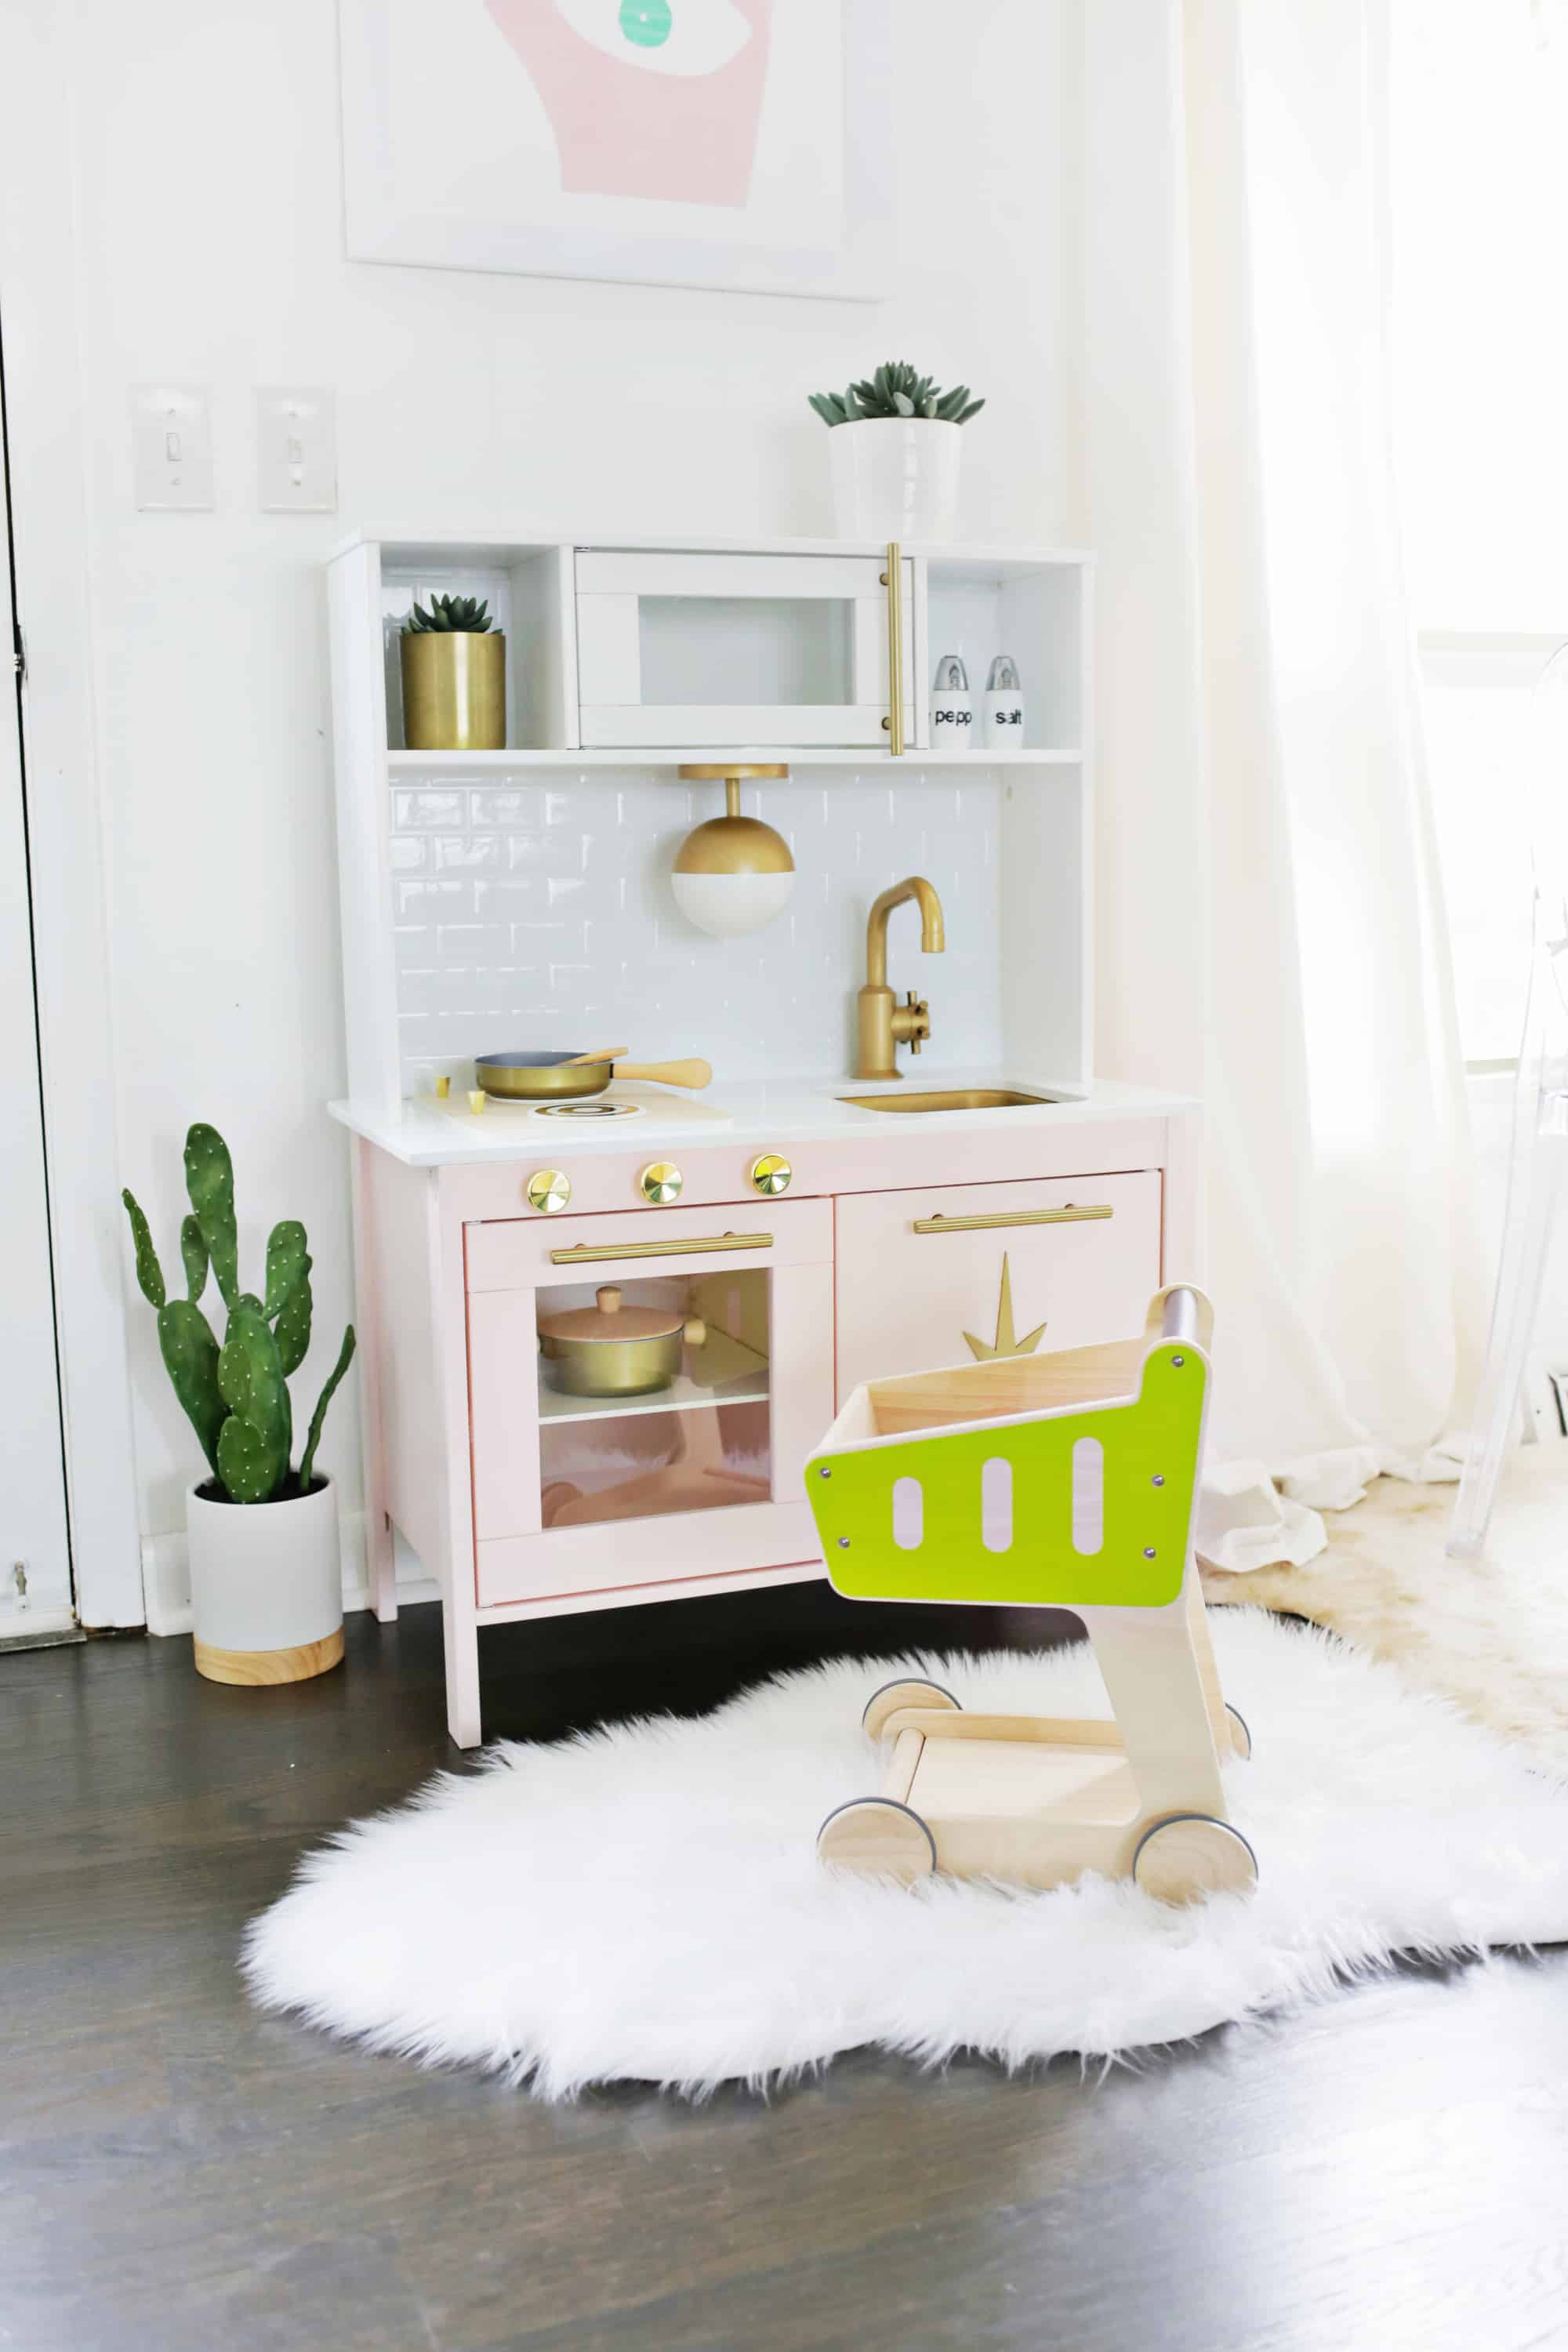 play kitchen ikea outdoor vent hood mid century modern hack a beautiful mess omg it s juuuuust too much in the best possible way i love how totally fits with rest of our decor and looks so luxe as well